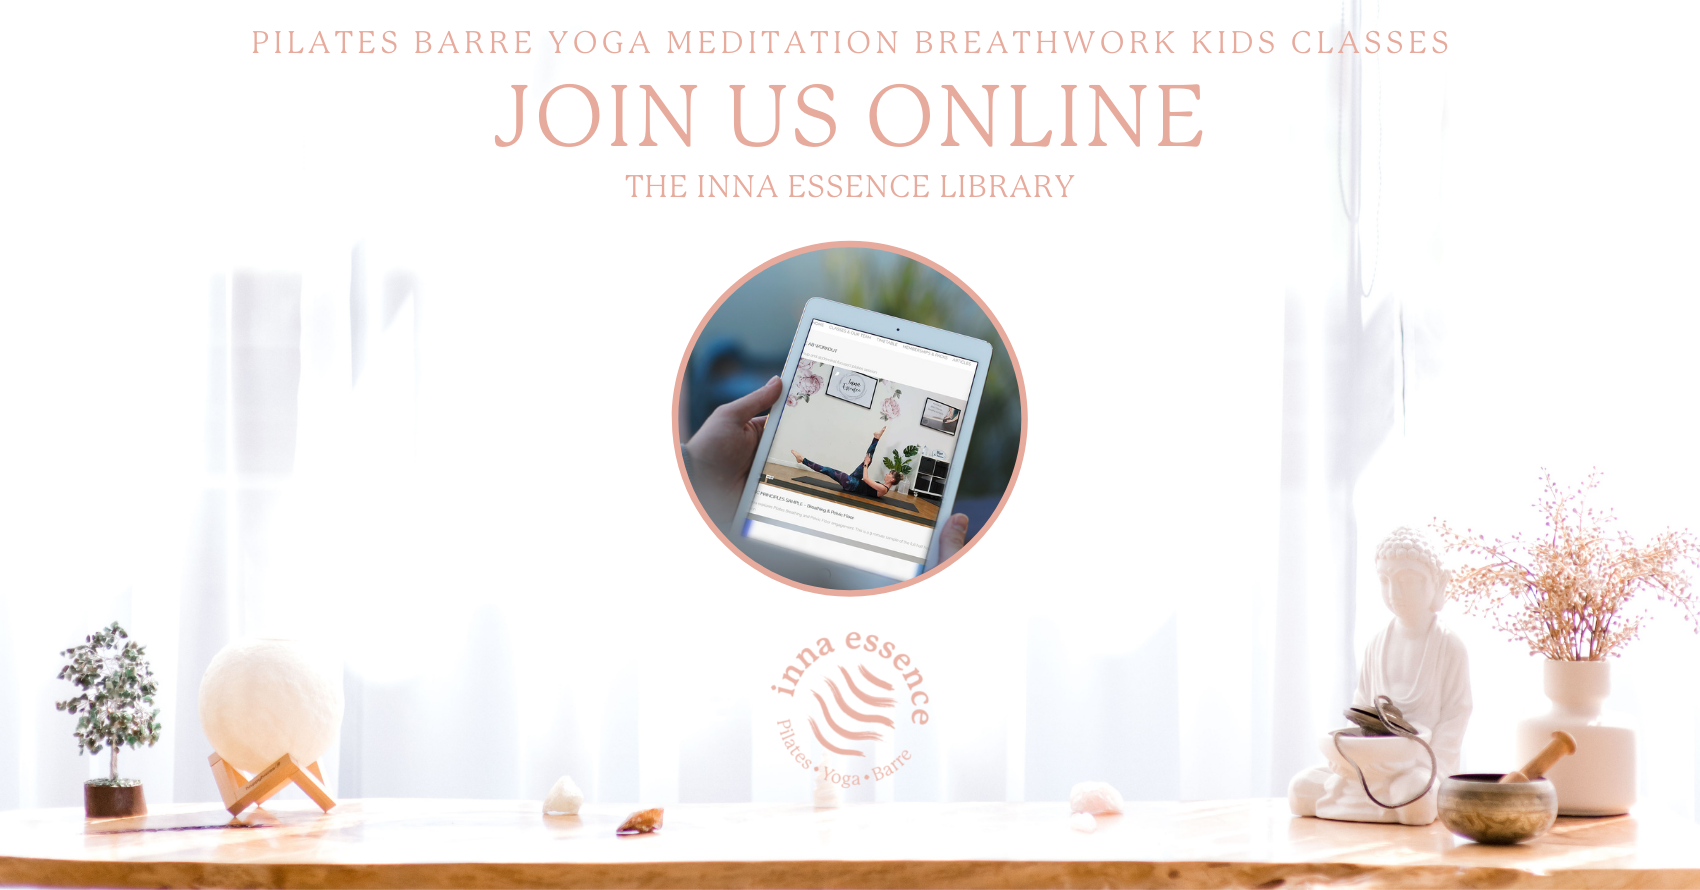 The Library Online classes with Inna Essence